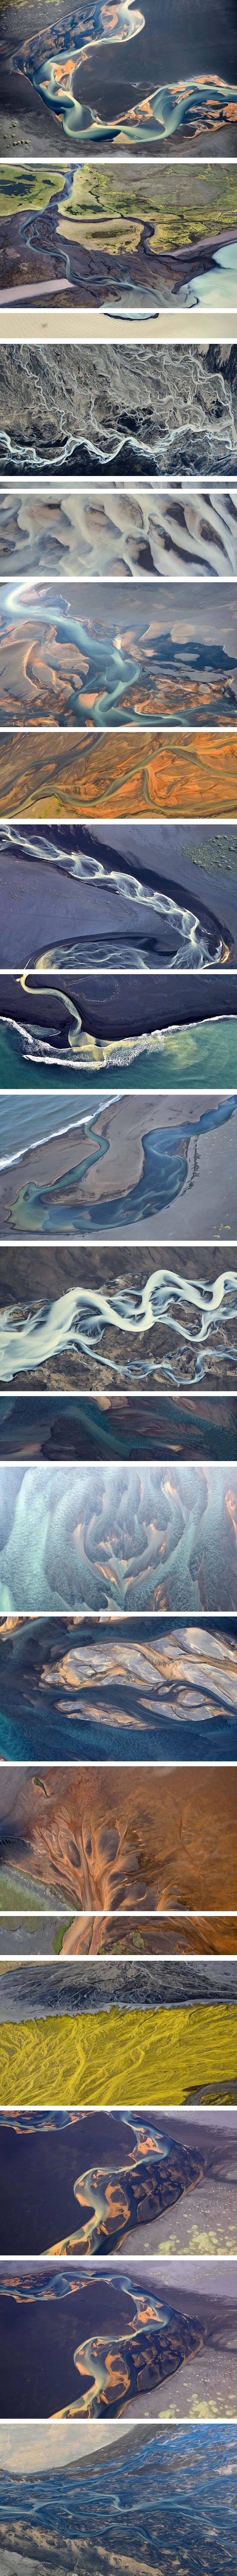 Aerial View of the Icelandic Rivers - At a first glance these photos almost look like satellite imagery of a distant planet. These photos were actually taken from a light aircraft traveling at 800m (2625 ft) above the ground by Andrei Yermolayev